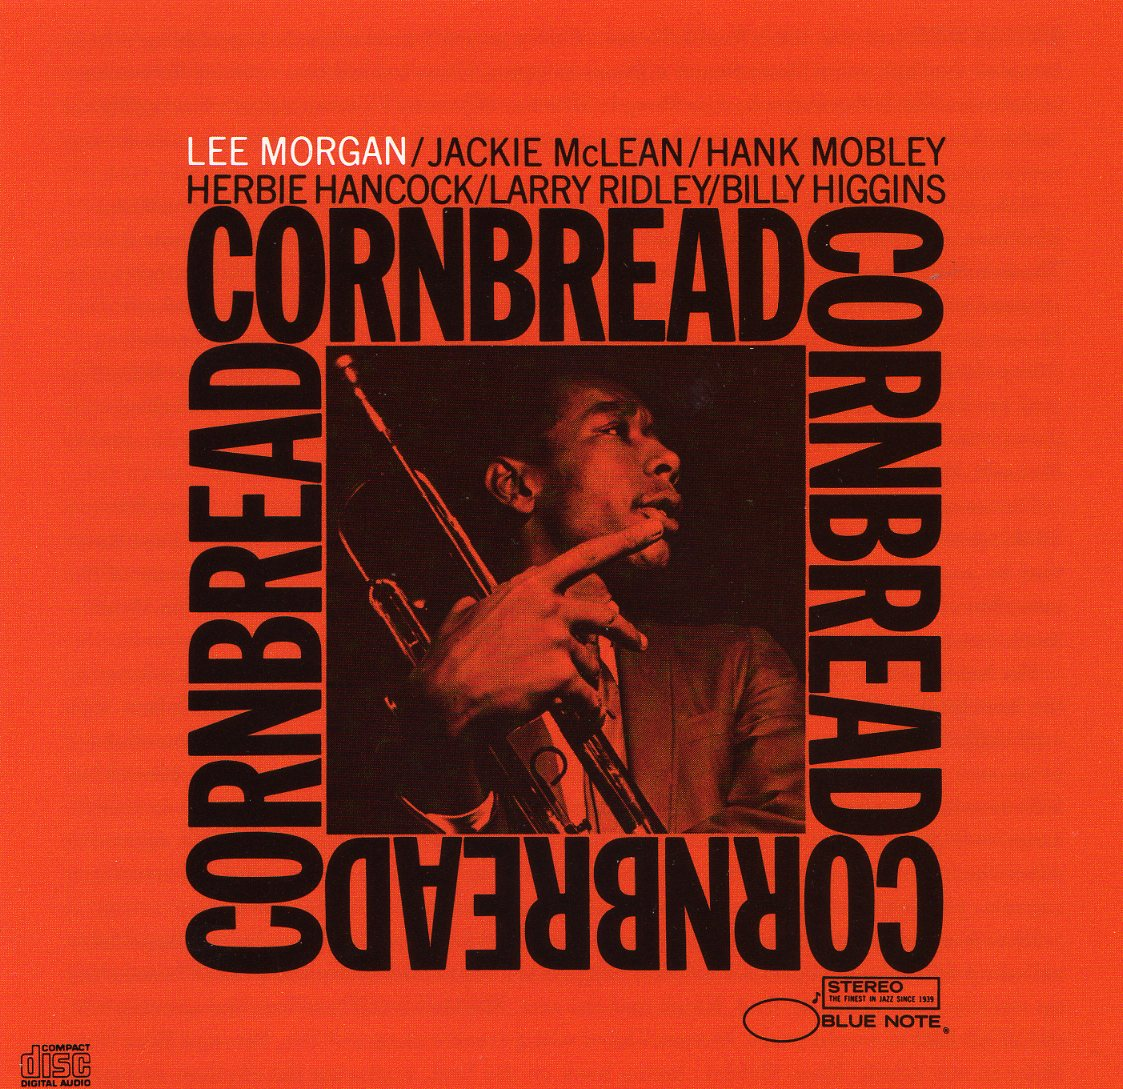 lee morgan - cornbread (album art)